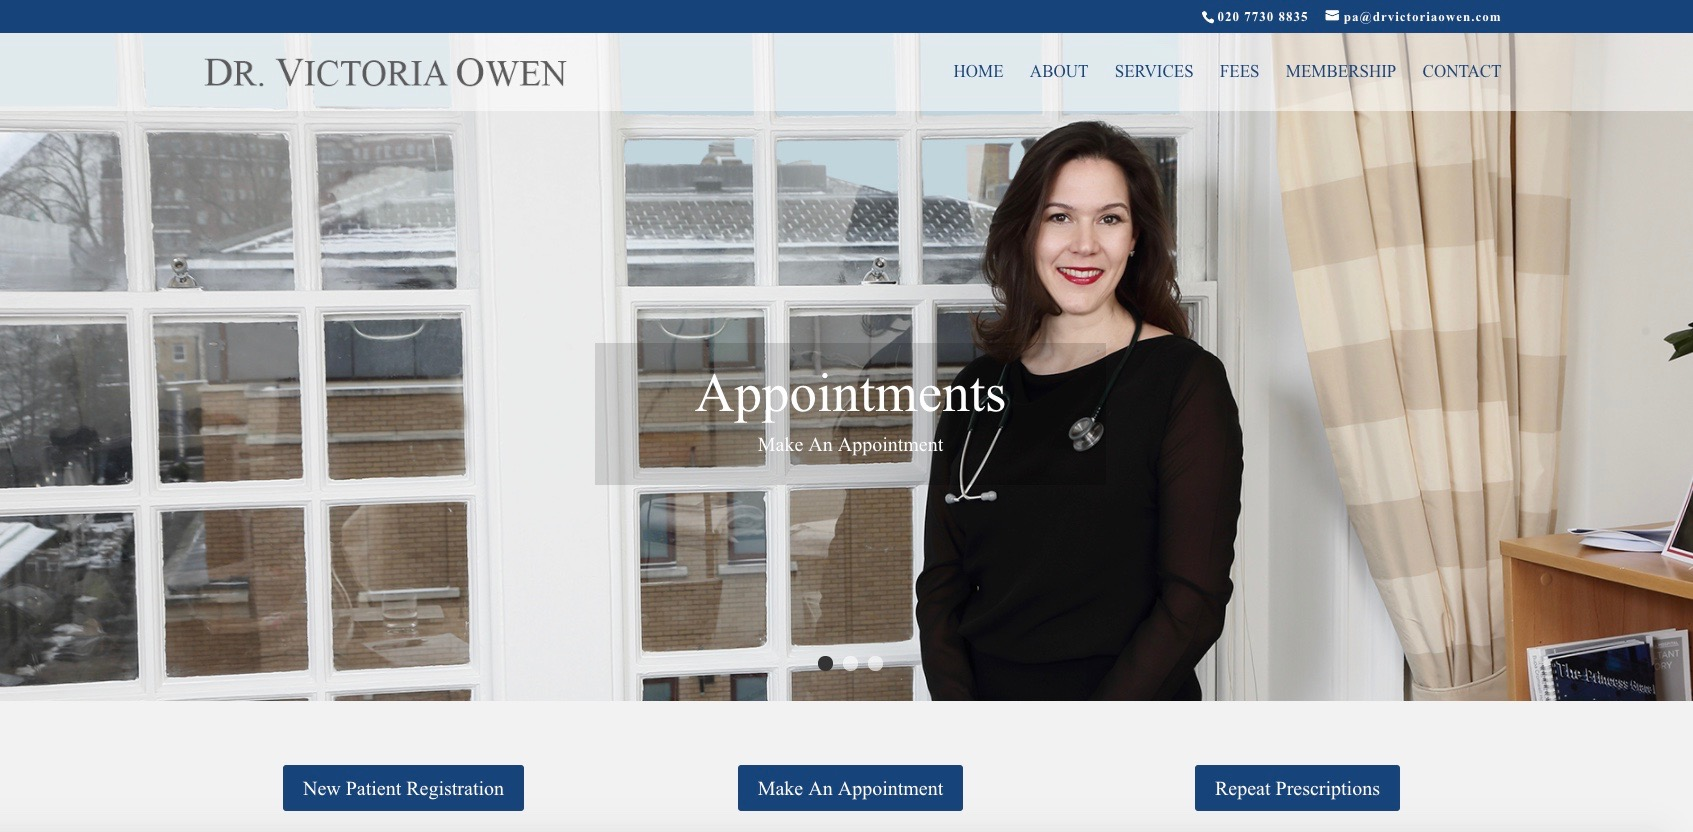 Dr. Victoria Owen is a private general practitioner